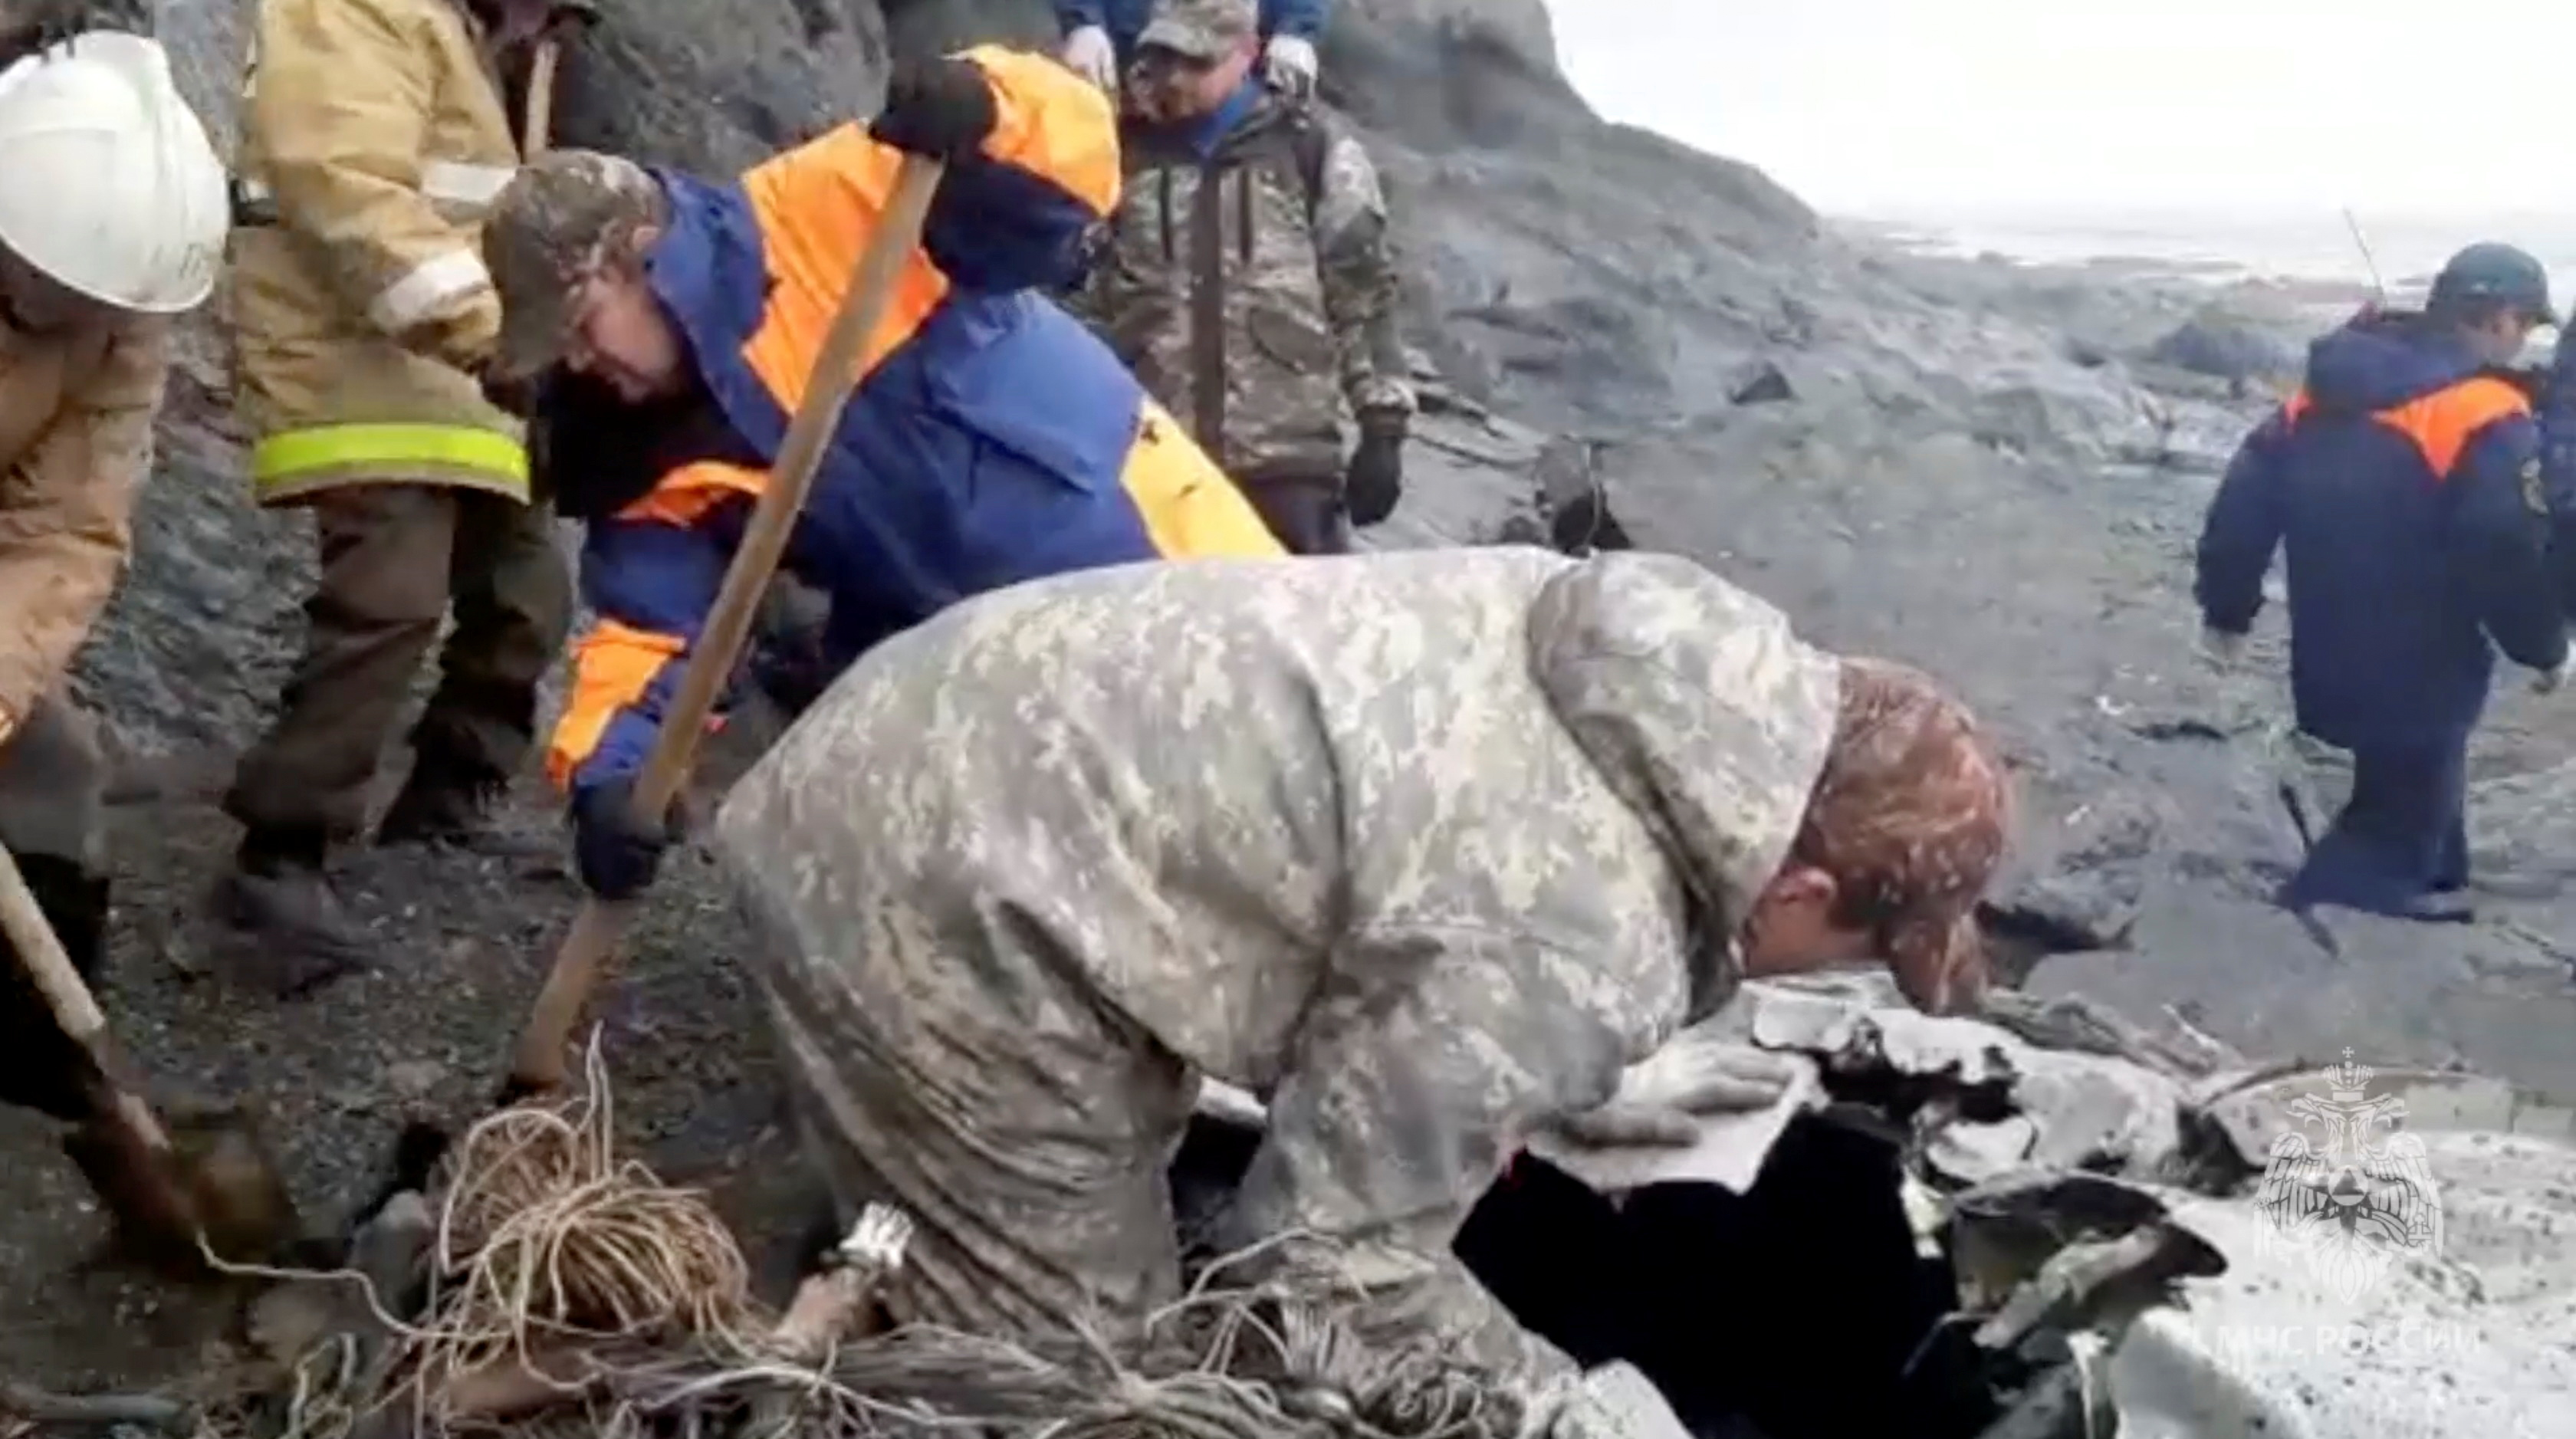 Specialists of the Russian Emergencies Ministry are seen at the crash site of a Russian An-26 passenger plane near the village of Palana in the north of the Kamchatka peninsula, Russia, in this still image taken from video, July 7, 2021.  Russia's Emergencies Ministry/Handout via REUTERS